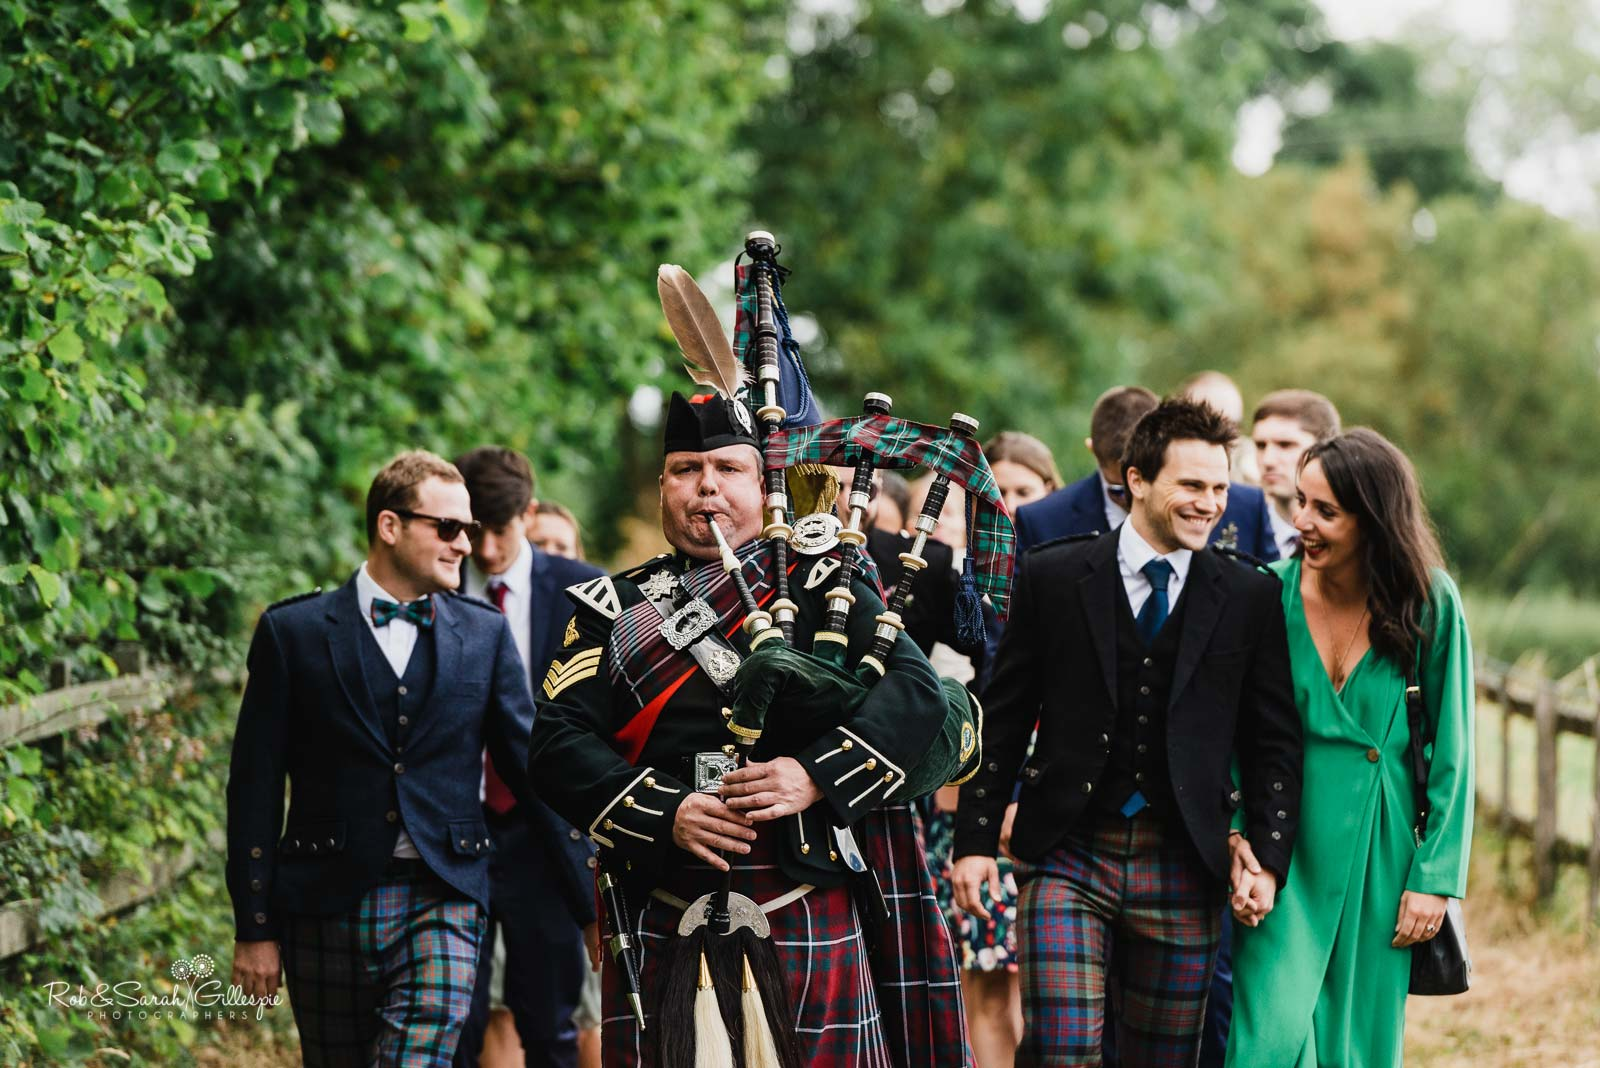 Wedding guests at St Giles church Packwood with piper